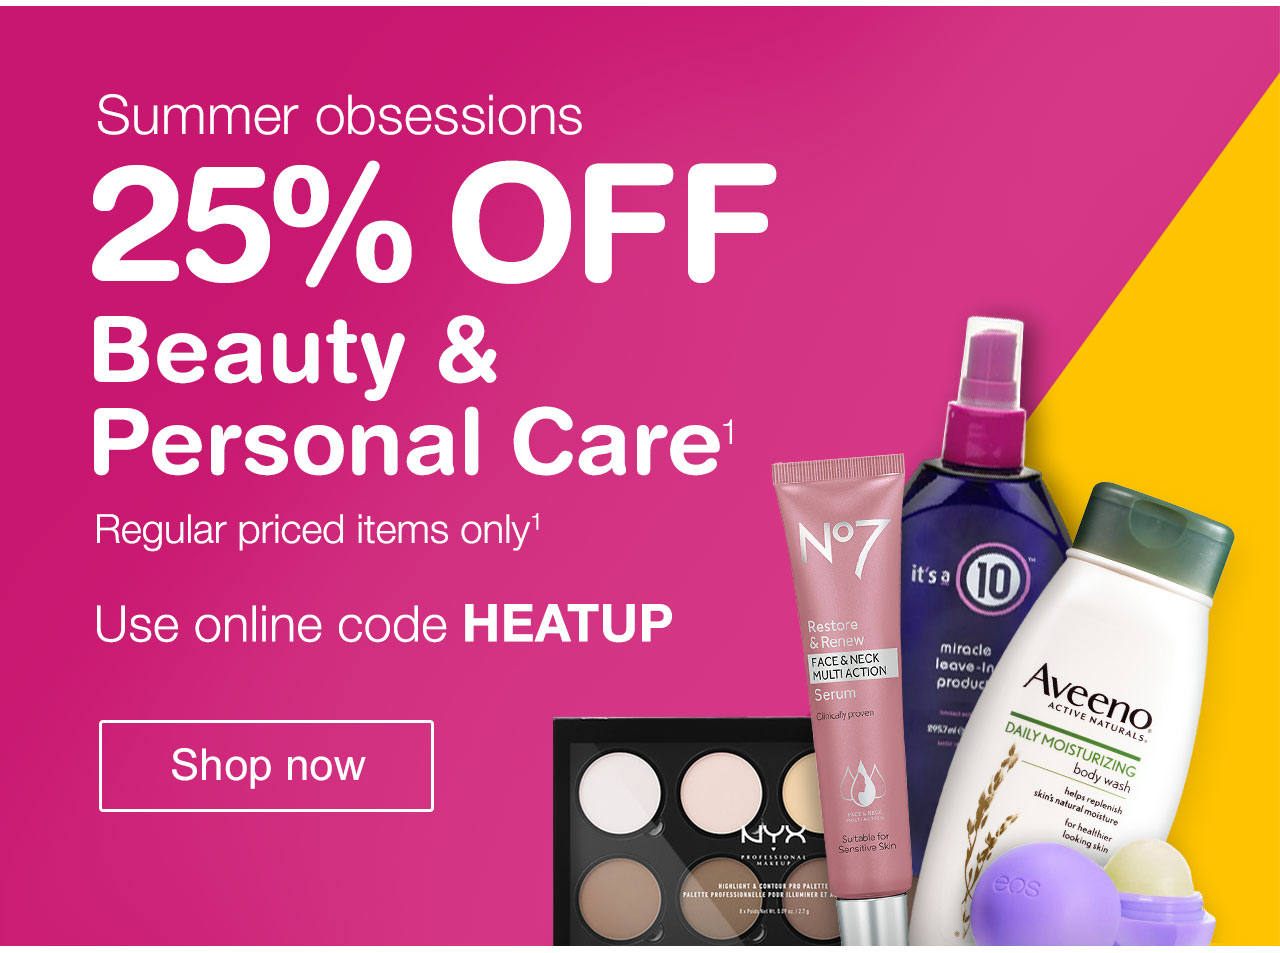 Summer obsessions. 25% OFF Beauty & Personal Care. Regular priced items only. Use online code HEATUP. Shop now.